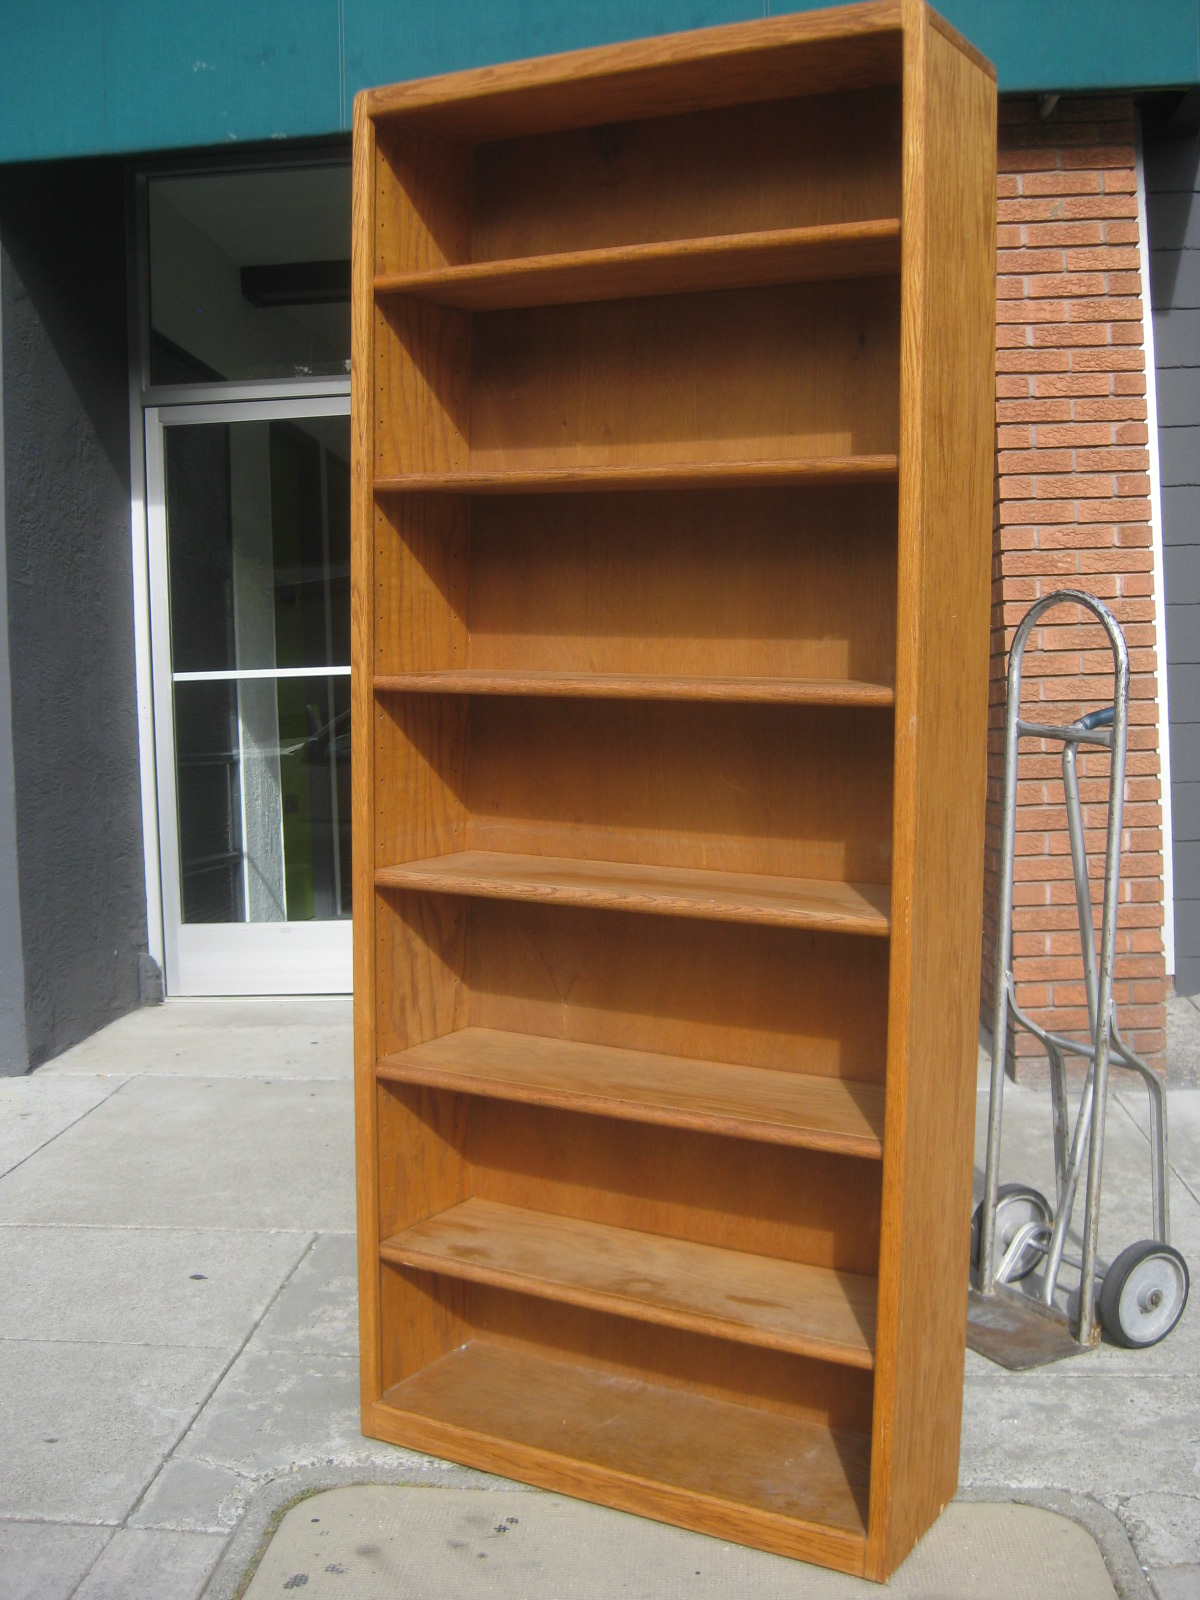 bookshelf furniture tall bookshelves furniture for home furniture cabinet MDXBBQO